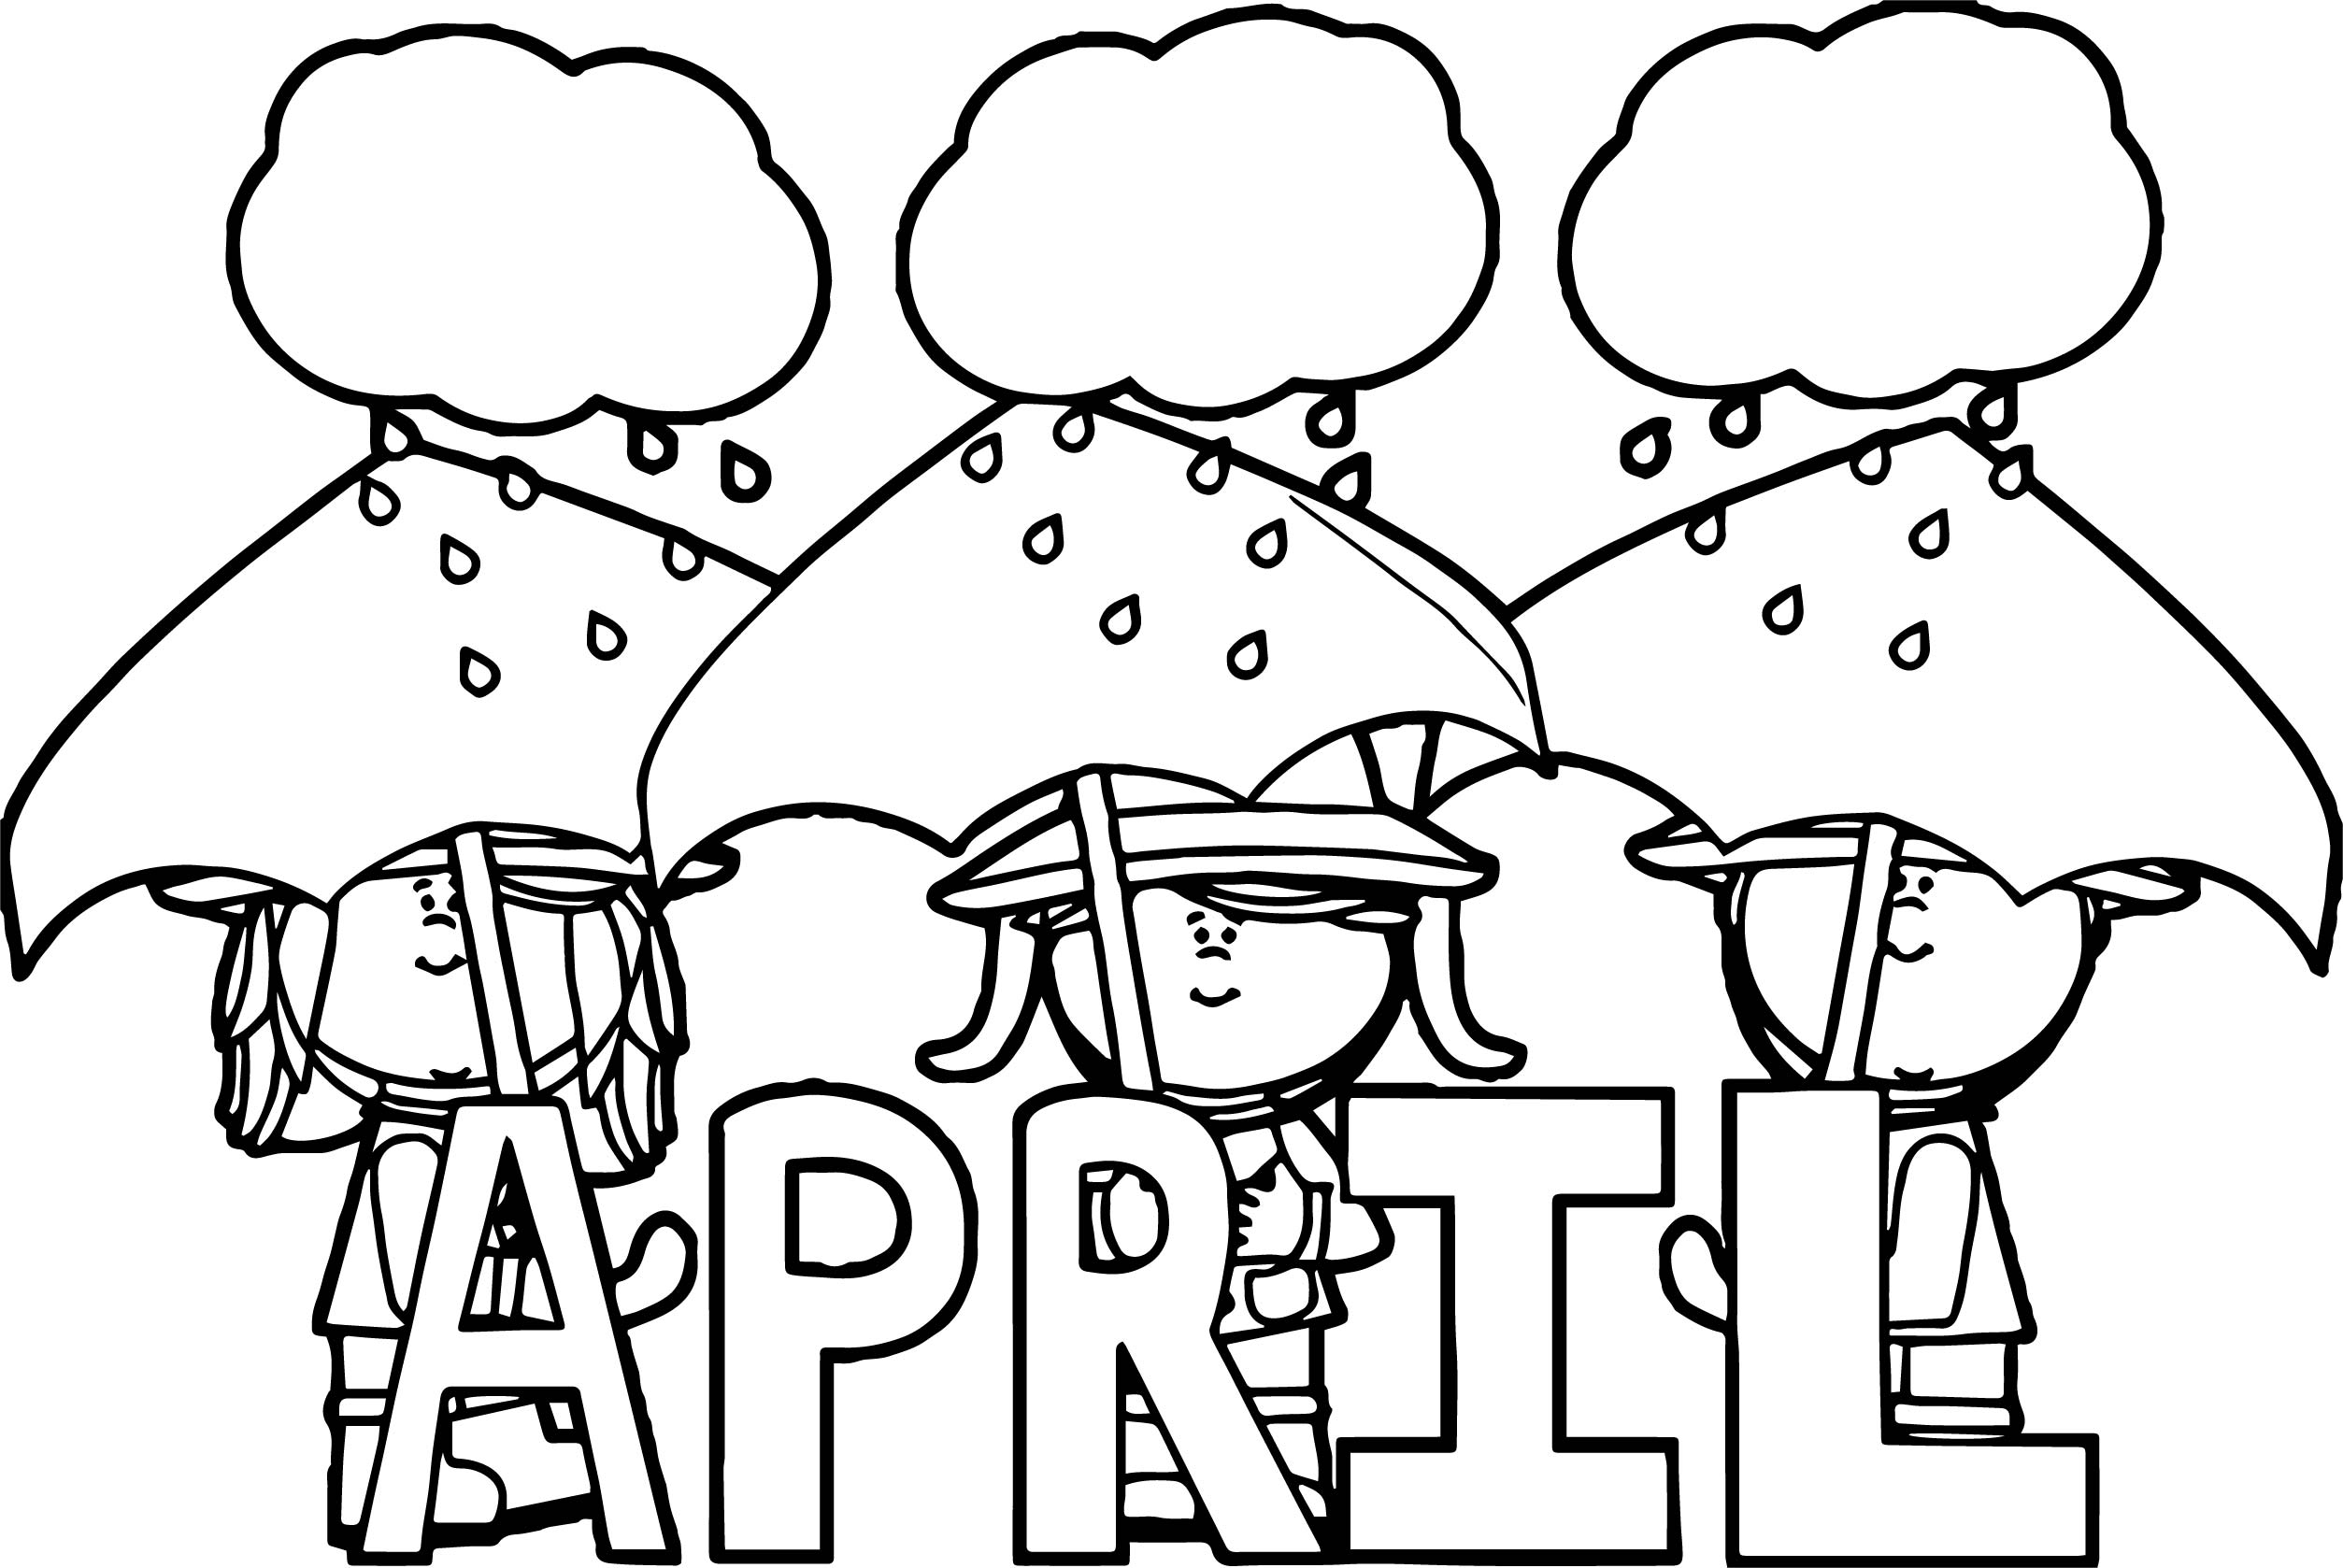 April Coloring Pages For Adults : Sobriety april coloring page wecoloringpage